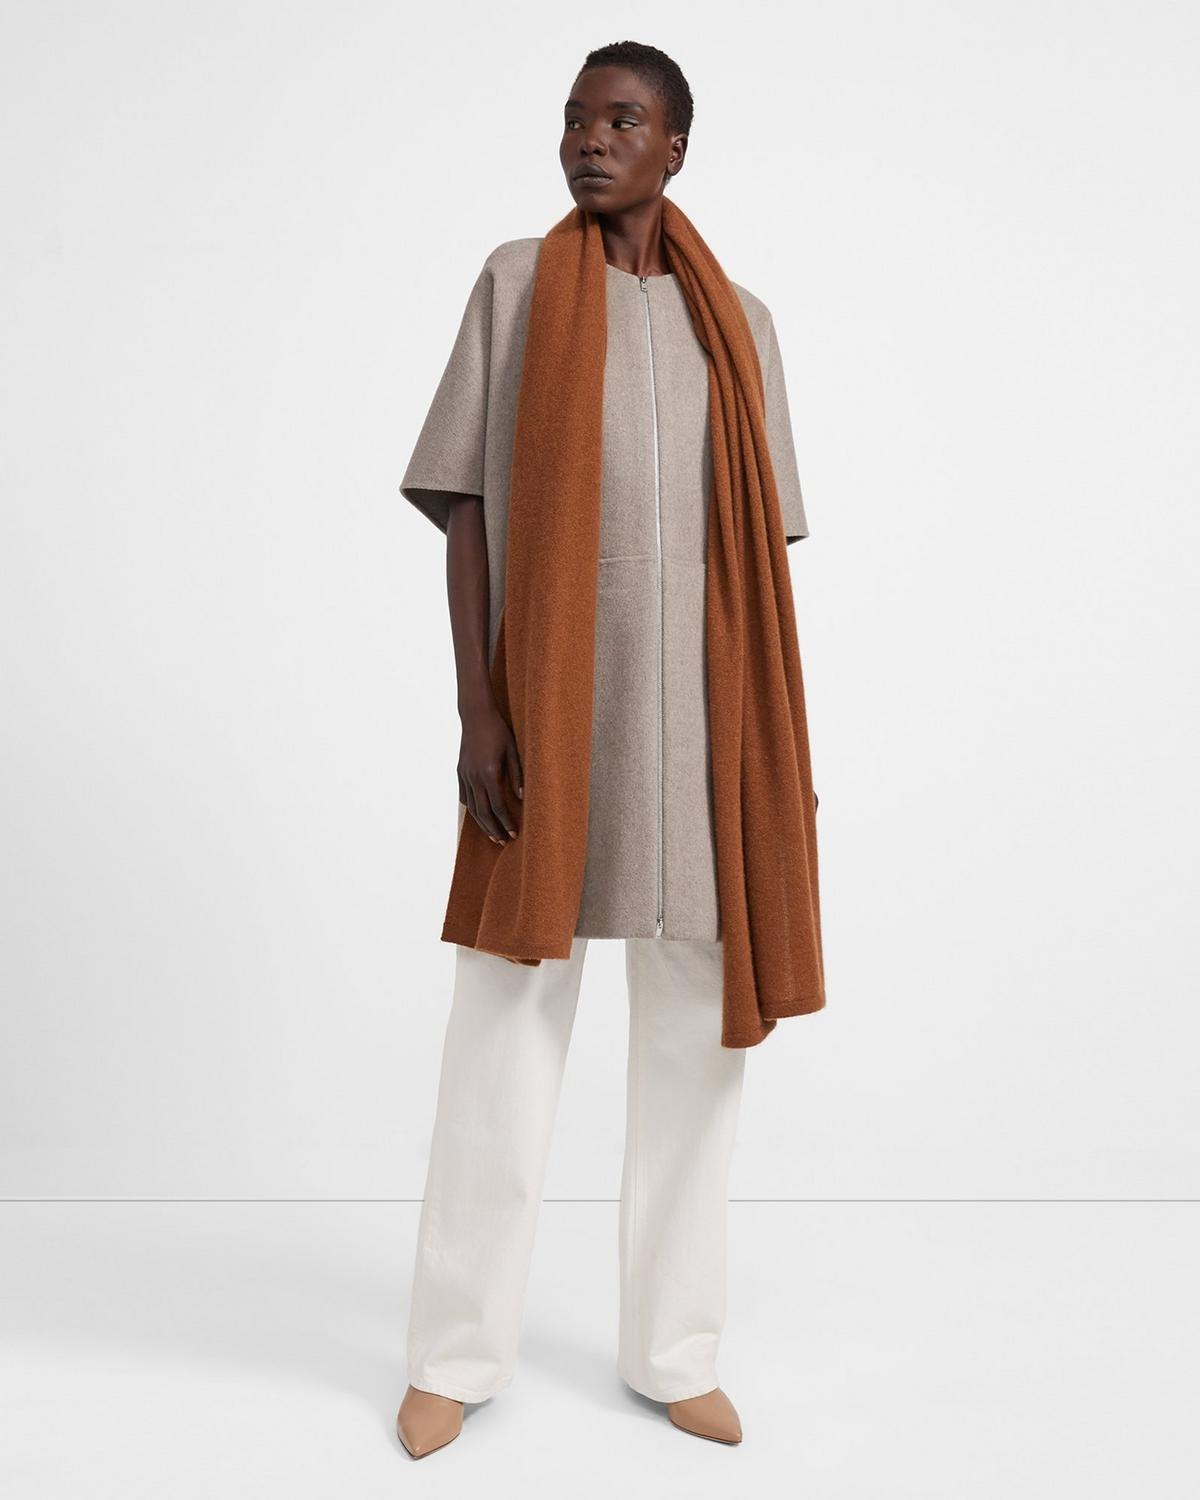 Blanket Scarf in Cashmere 0 - click to view larger image